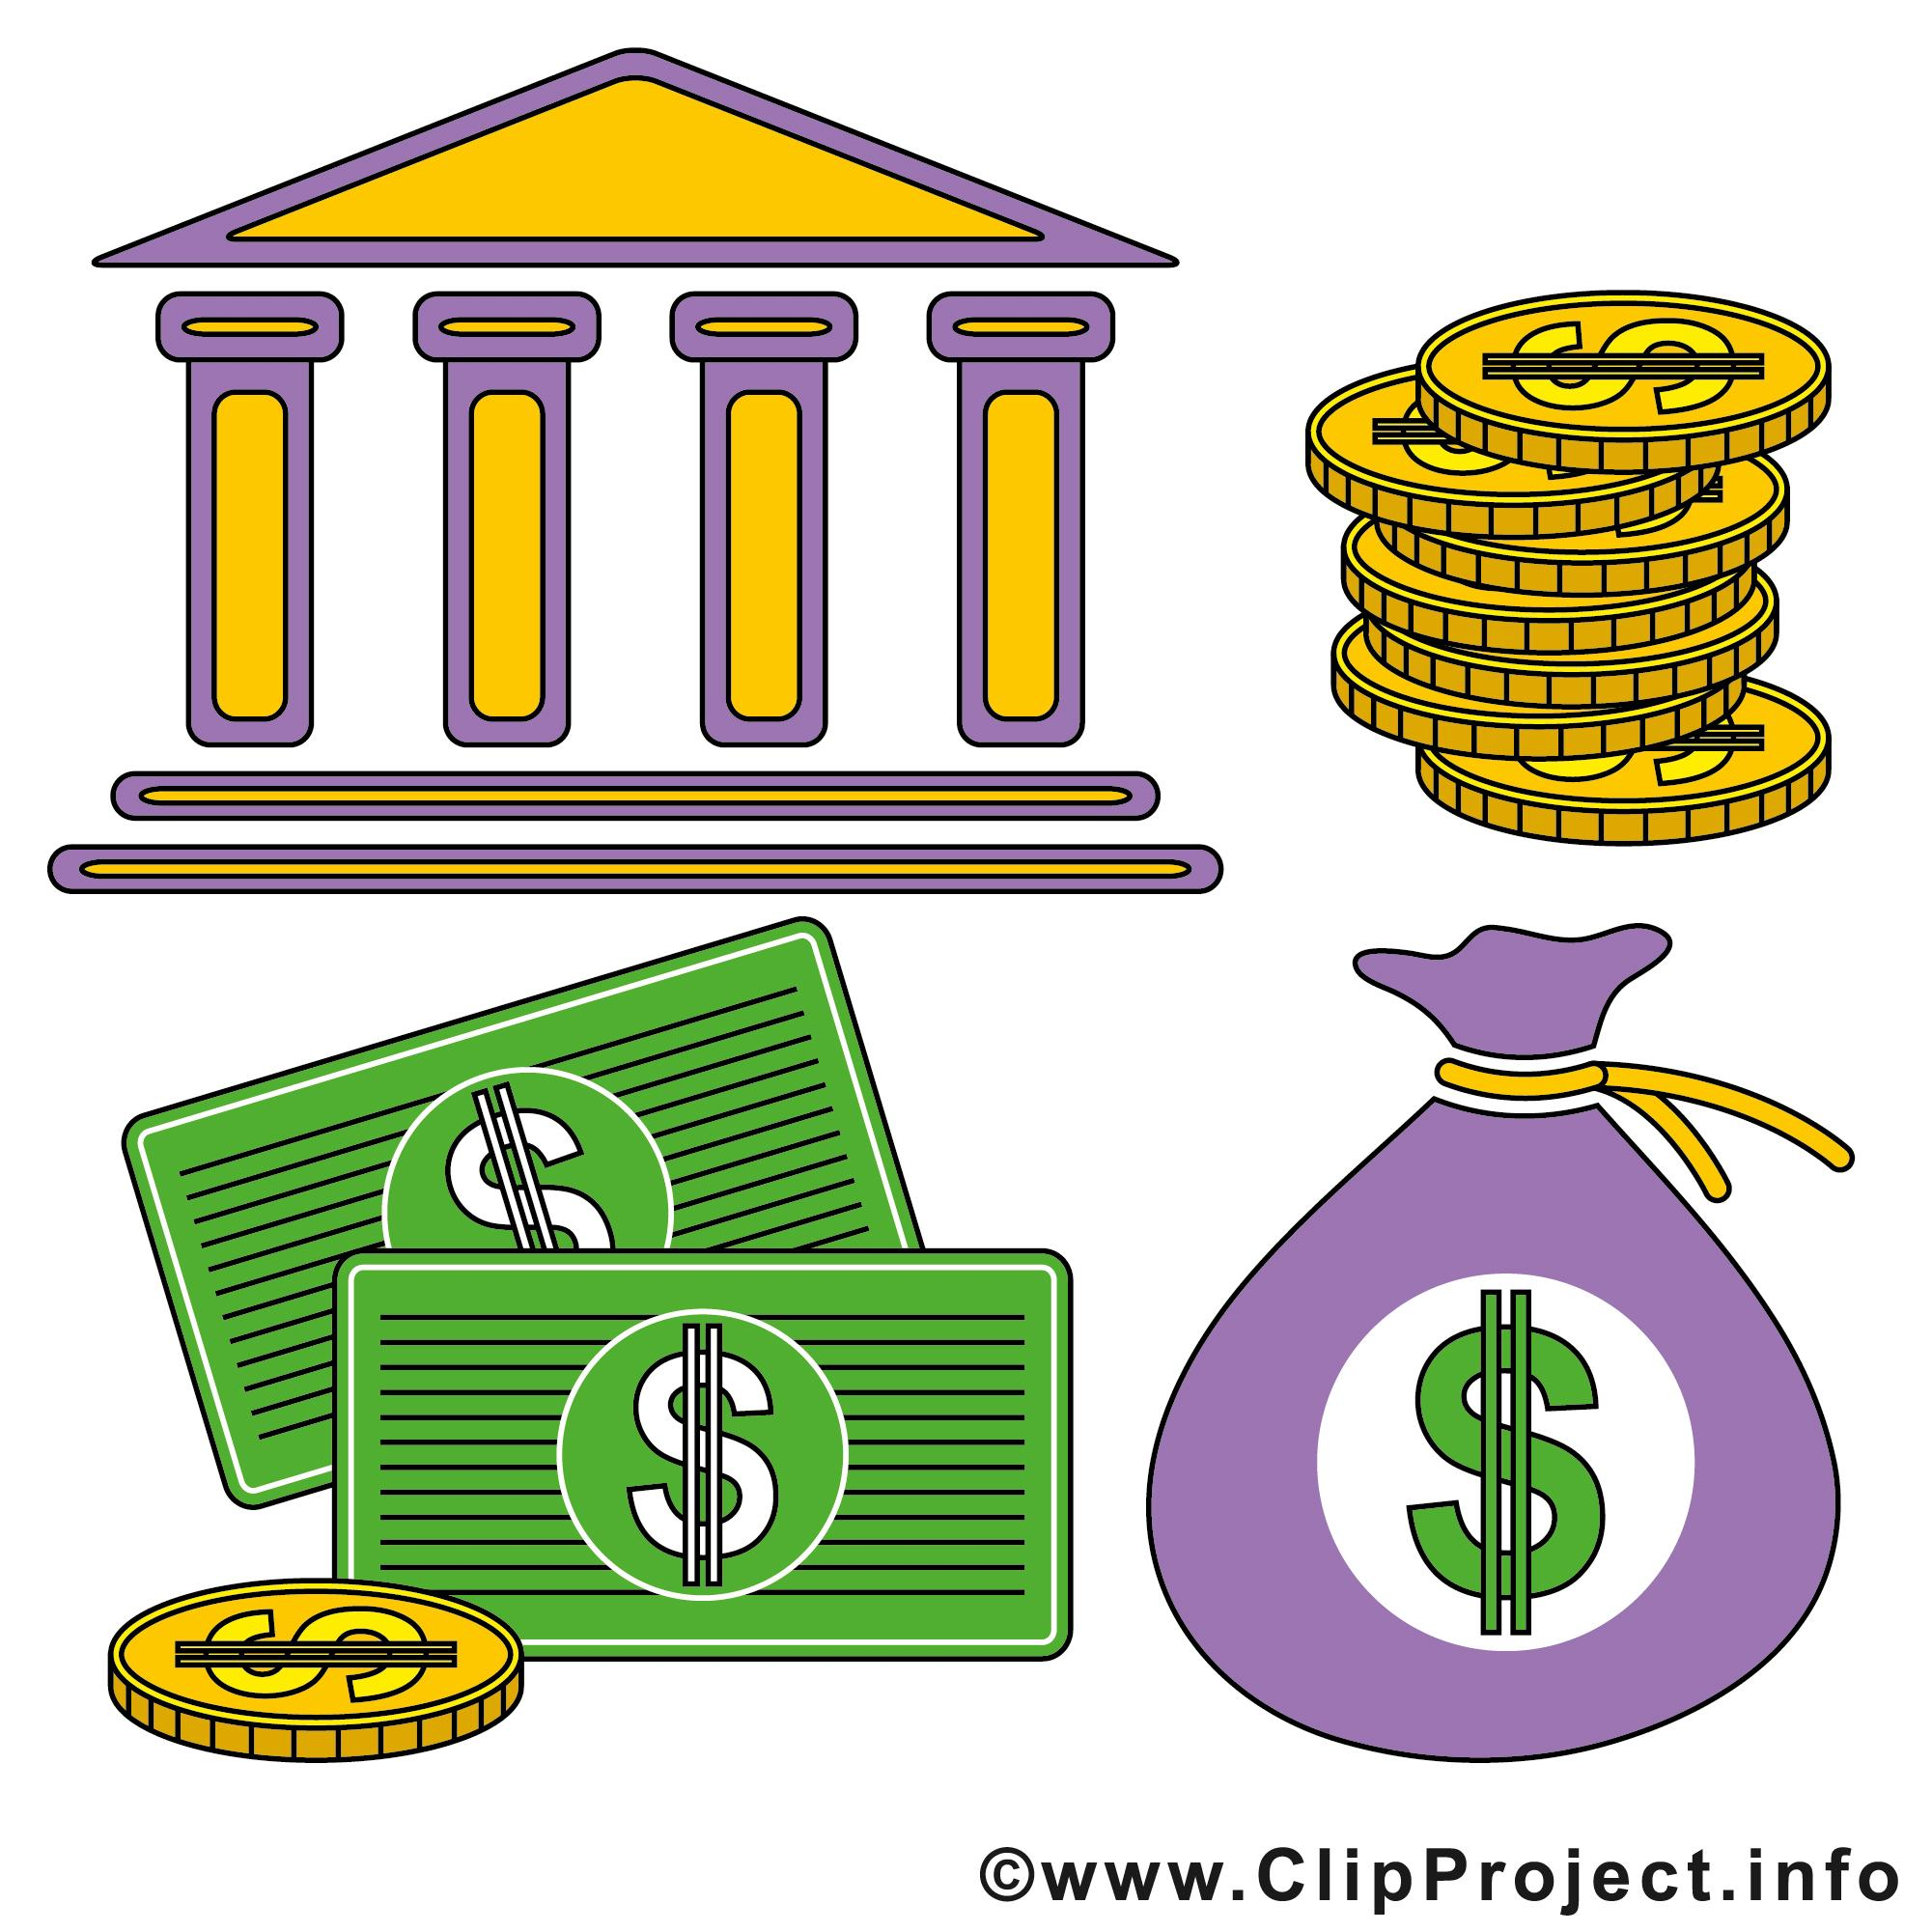 Bank clipart graphic freeuse Bank Clipart Microsoft Clip art of Bank Clipart #5373 — Clipartwork graphic freeuse